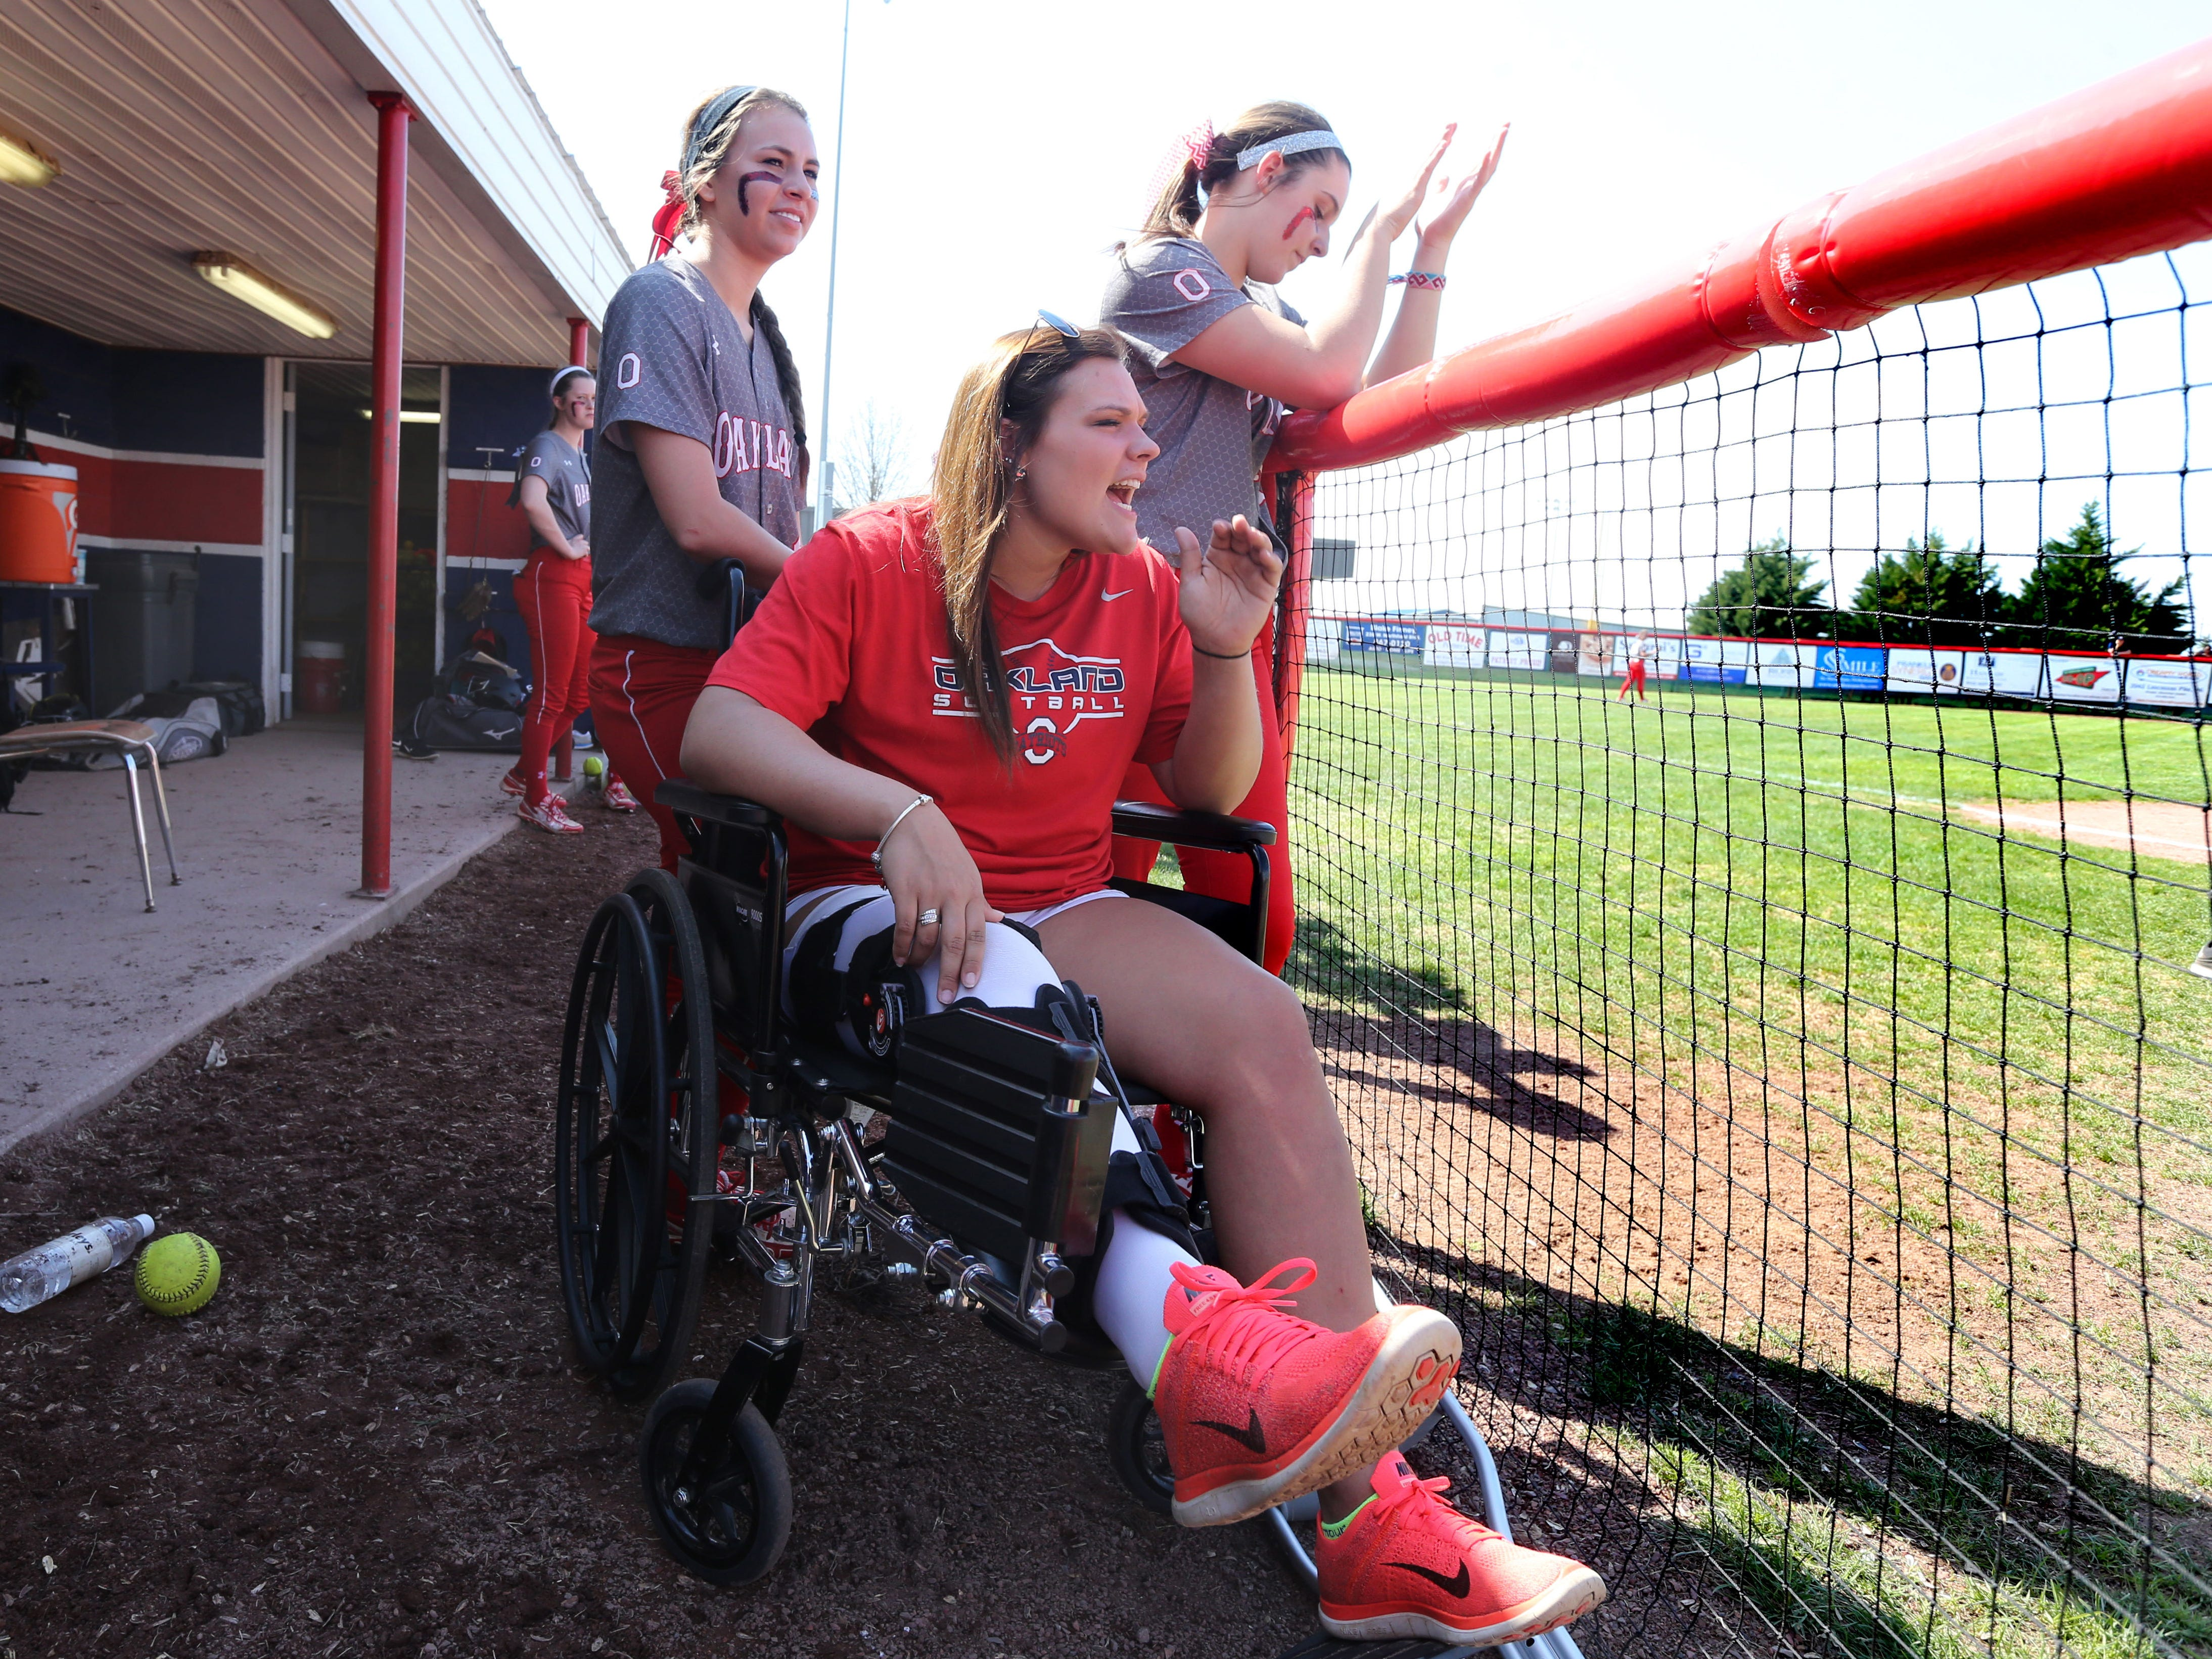 Oakland's Savannah Lee cheers on her team from a weelchair in the dugout. Lee suffered a season-ending knee injury last month.Oakland's Maddy Constantinescu, left and Maleia Gray, right stand behind Lee.